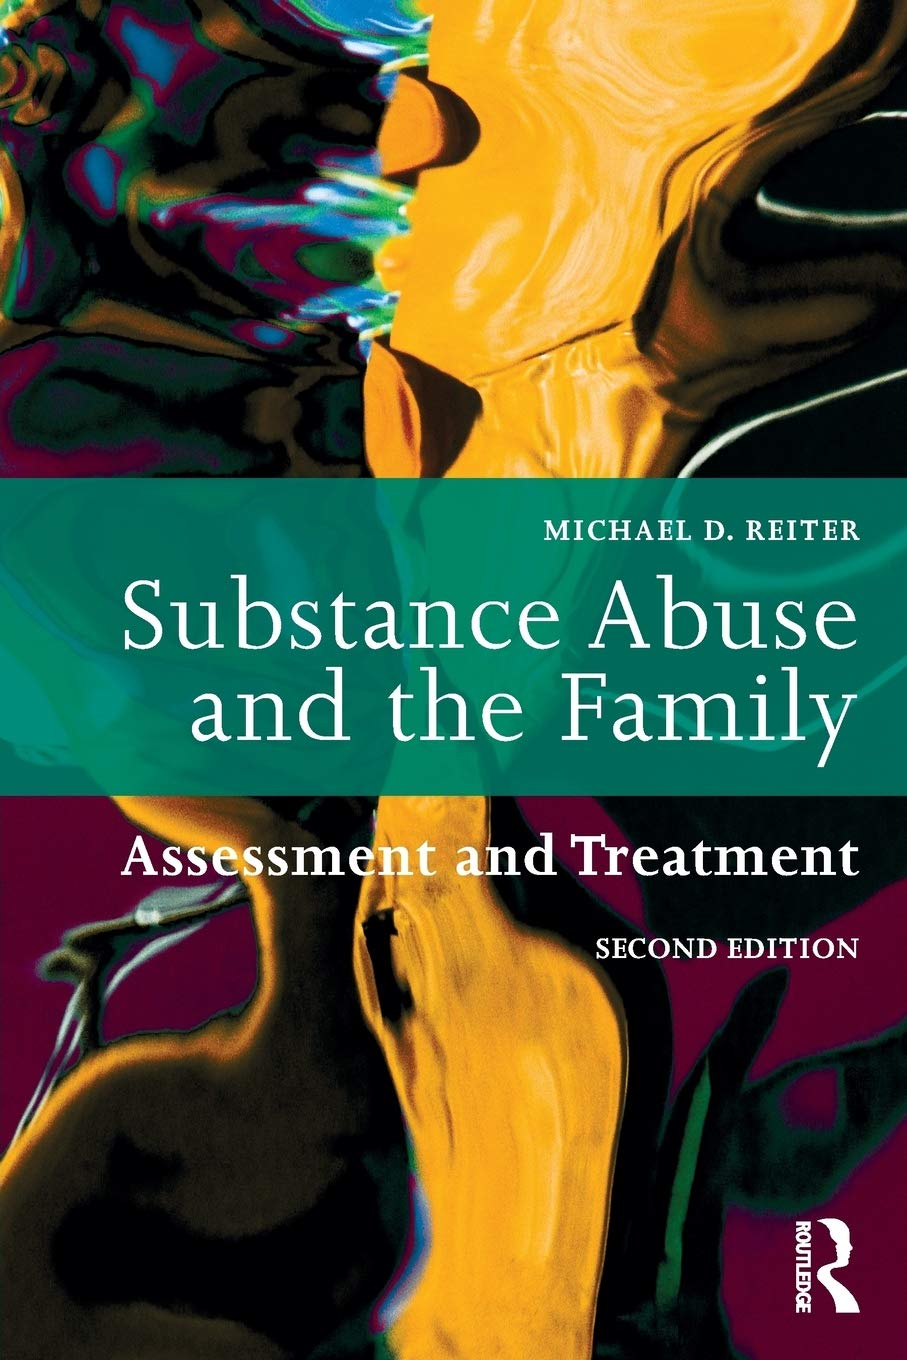 Download Substance Abuse And The Family 